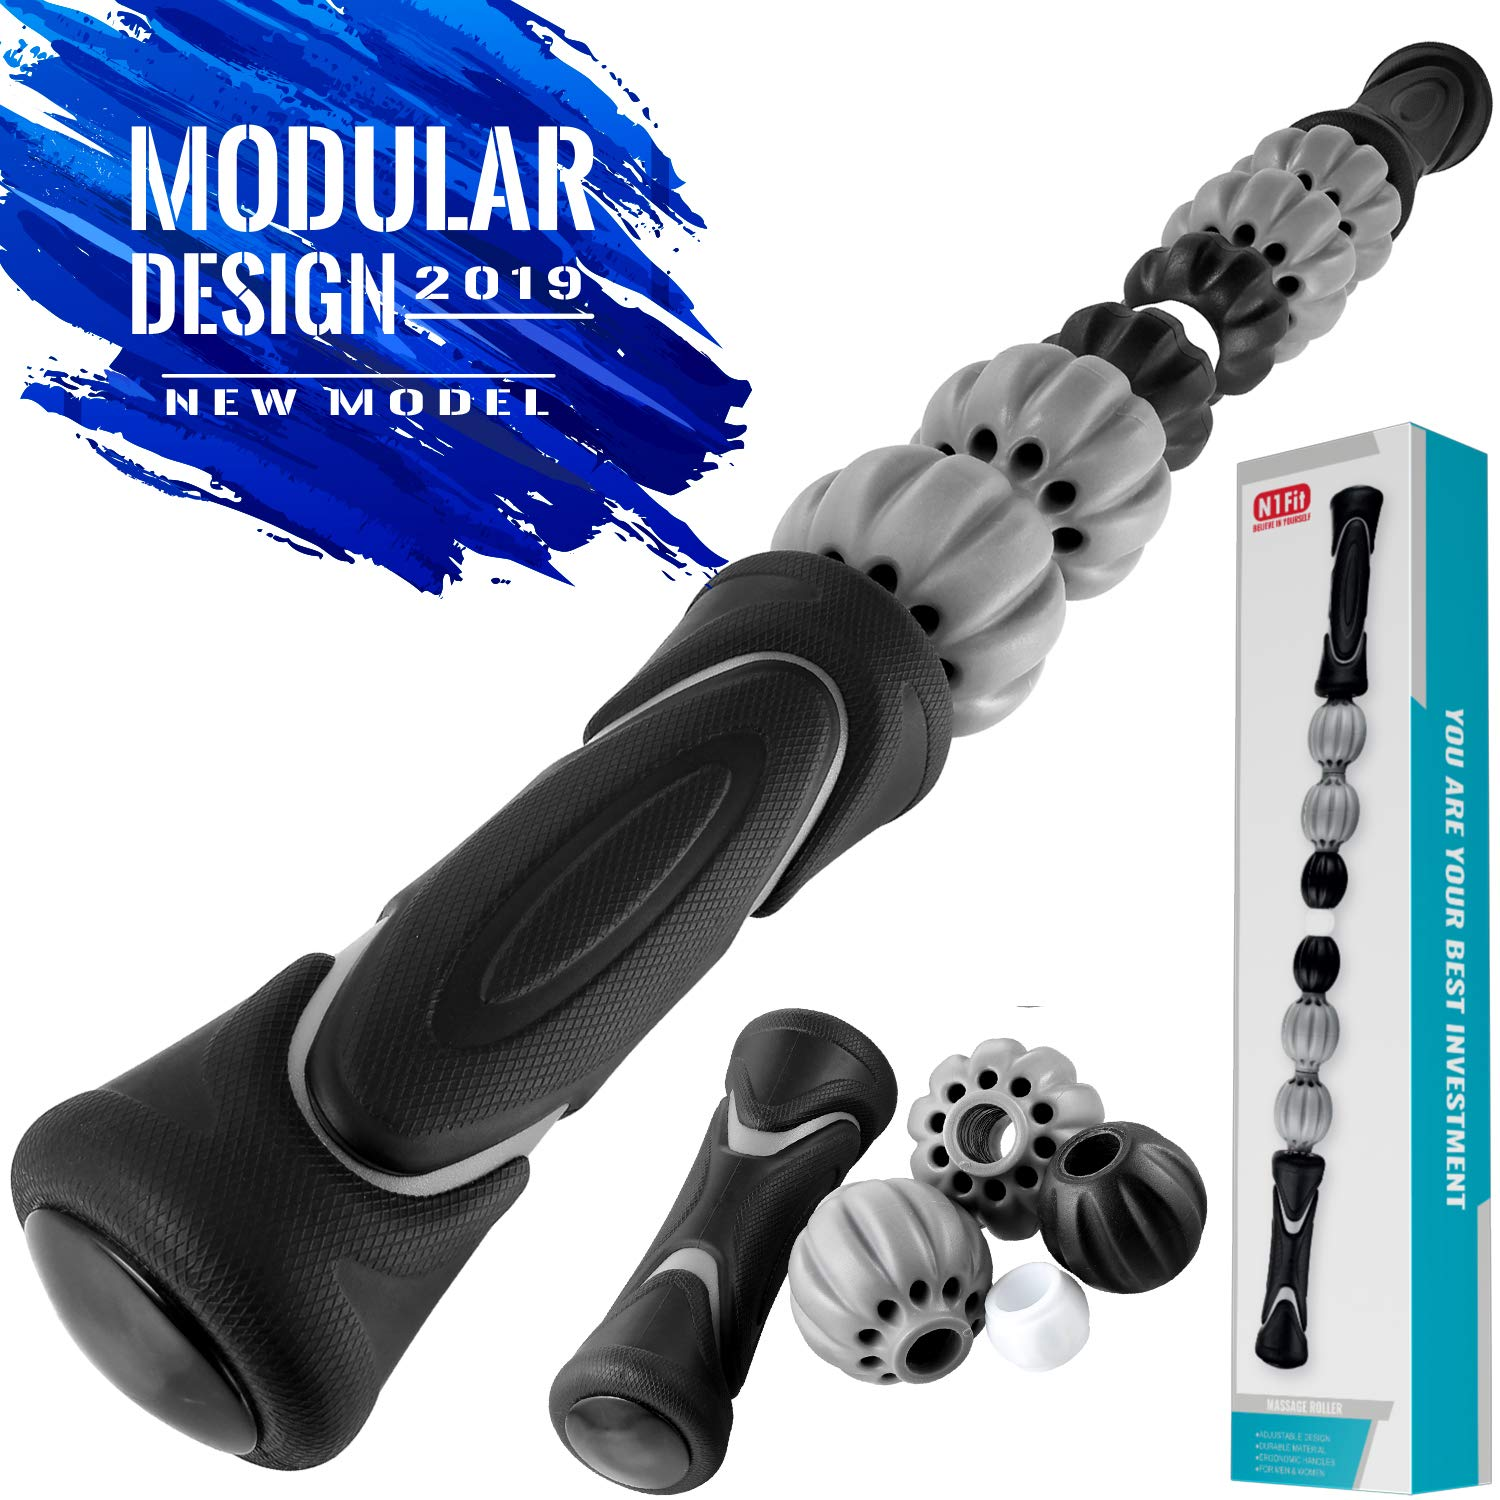 Muscle Roller Stick - Massage Stick for Relieving Muscle Soreness